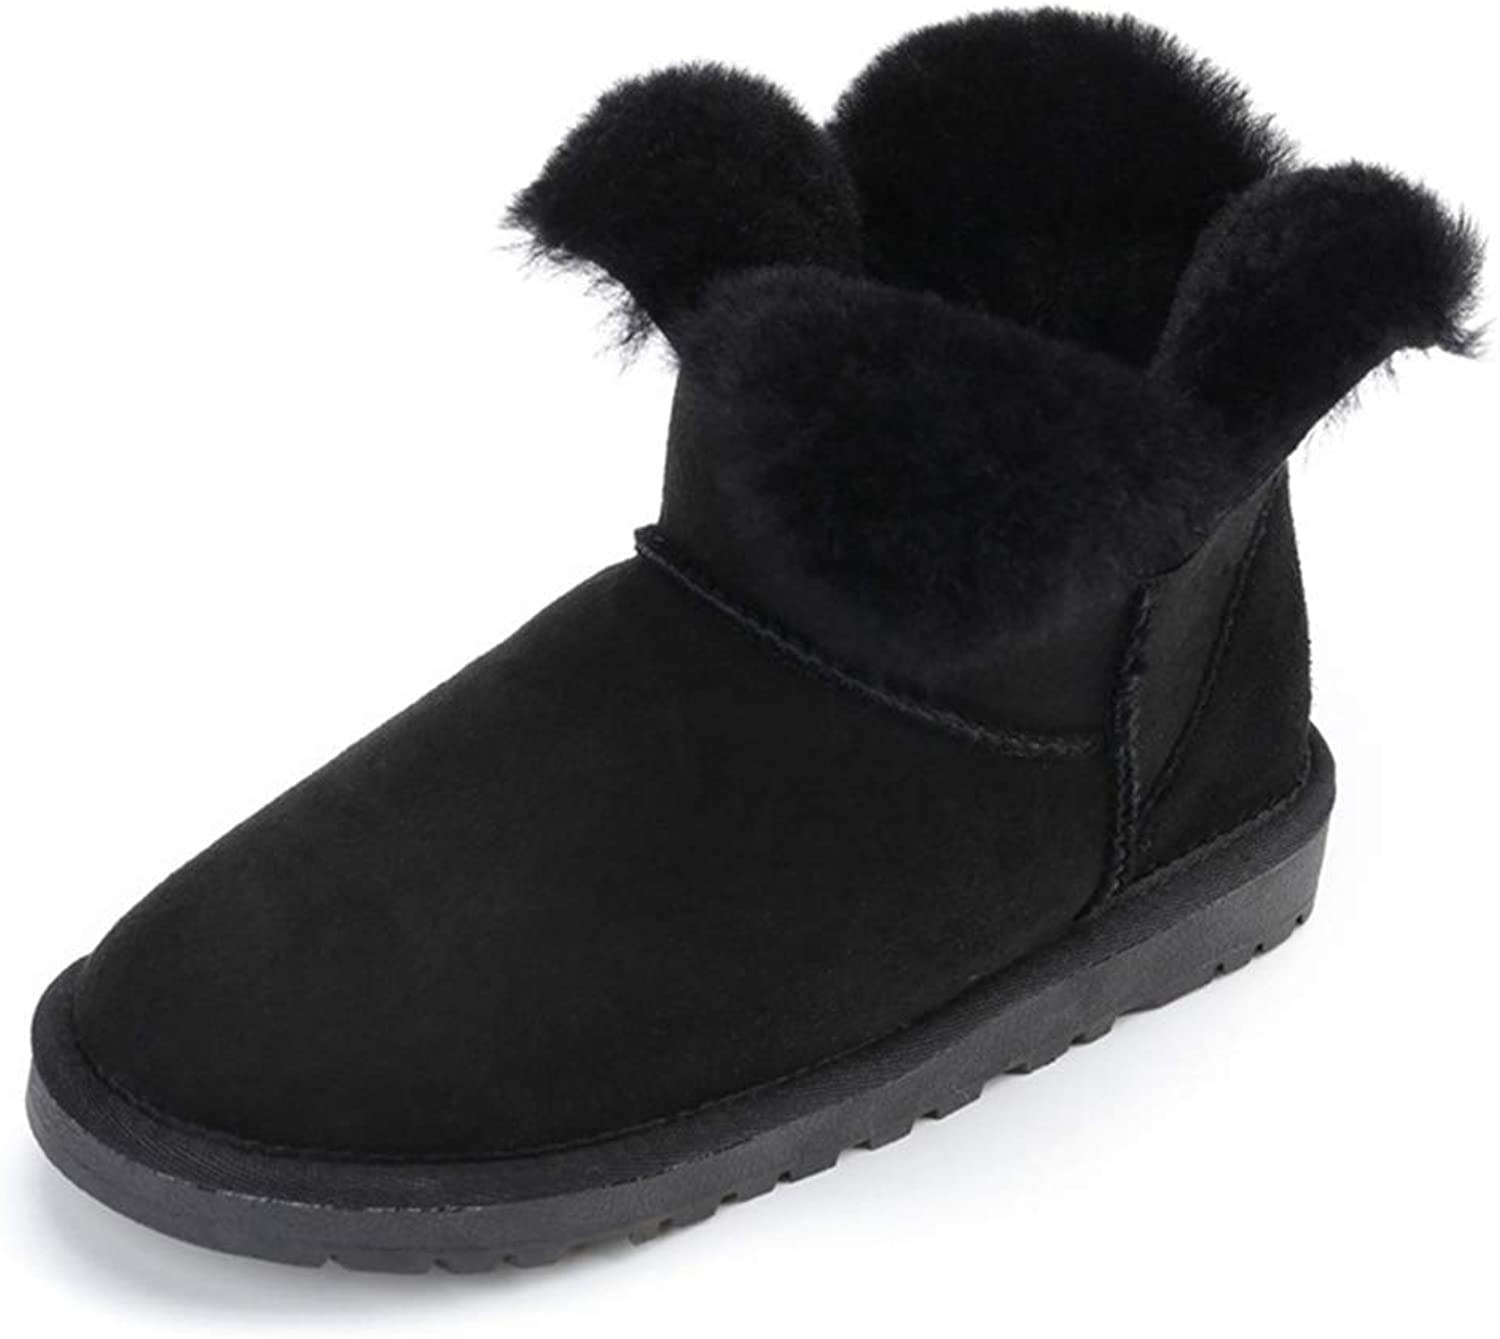 Woman Winter Ankle Snow Boots Fashion Wool Fur Girls Sheepskin Short shoes Boot